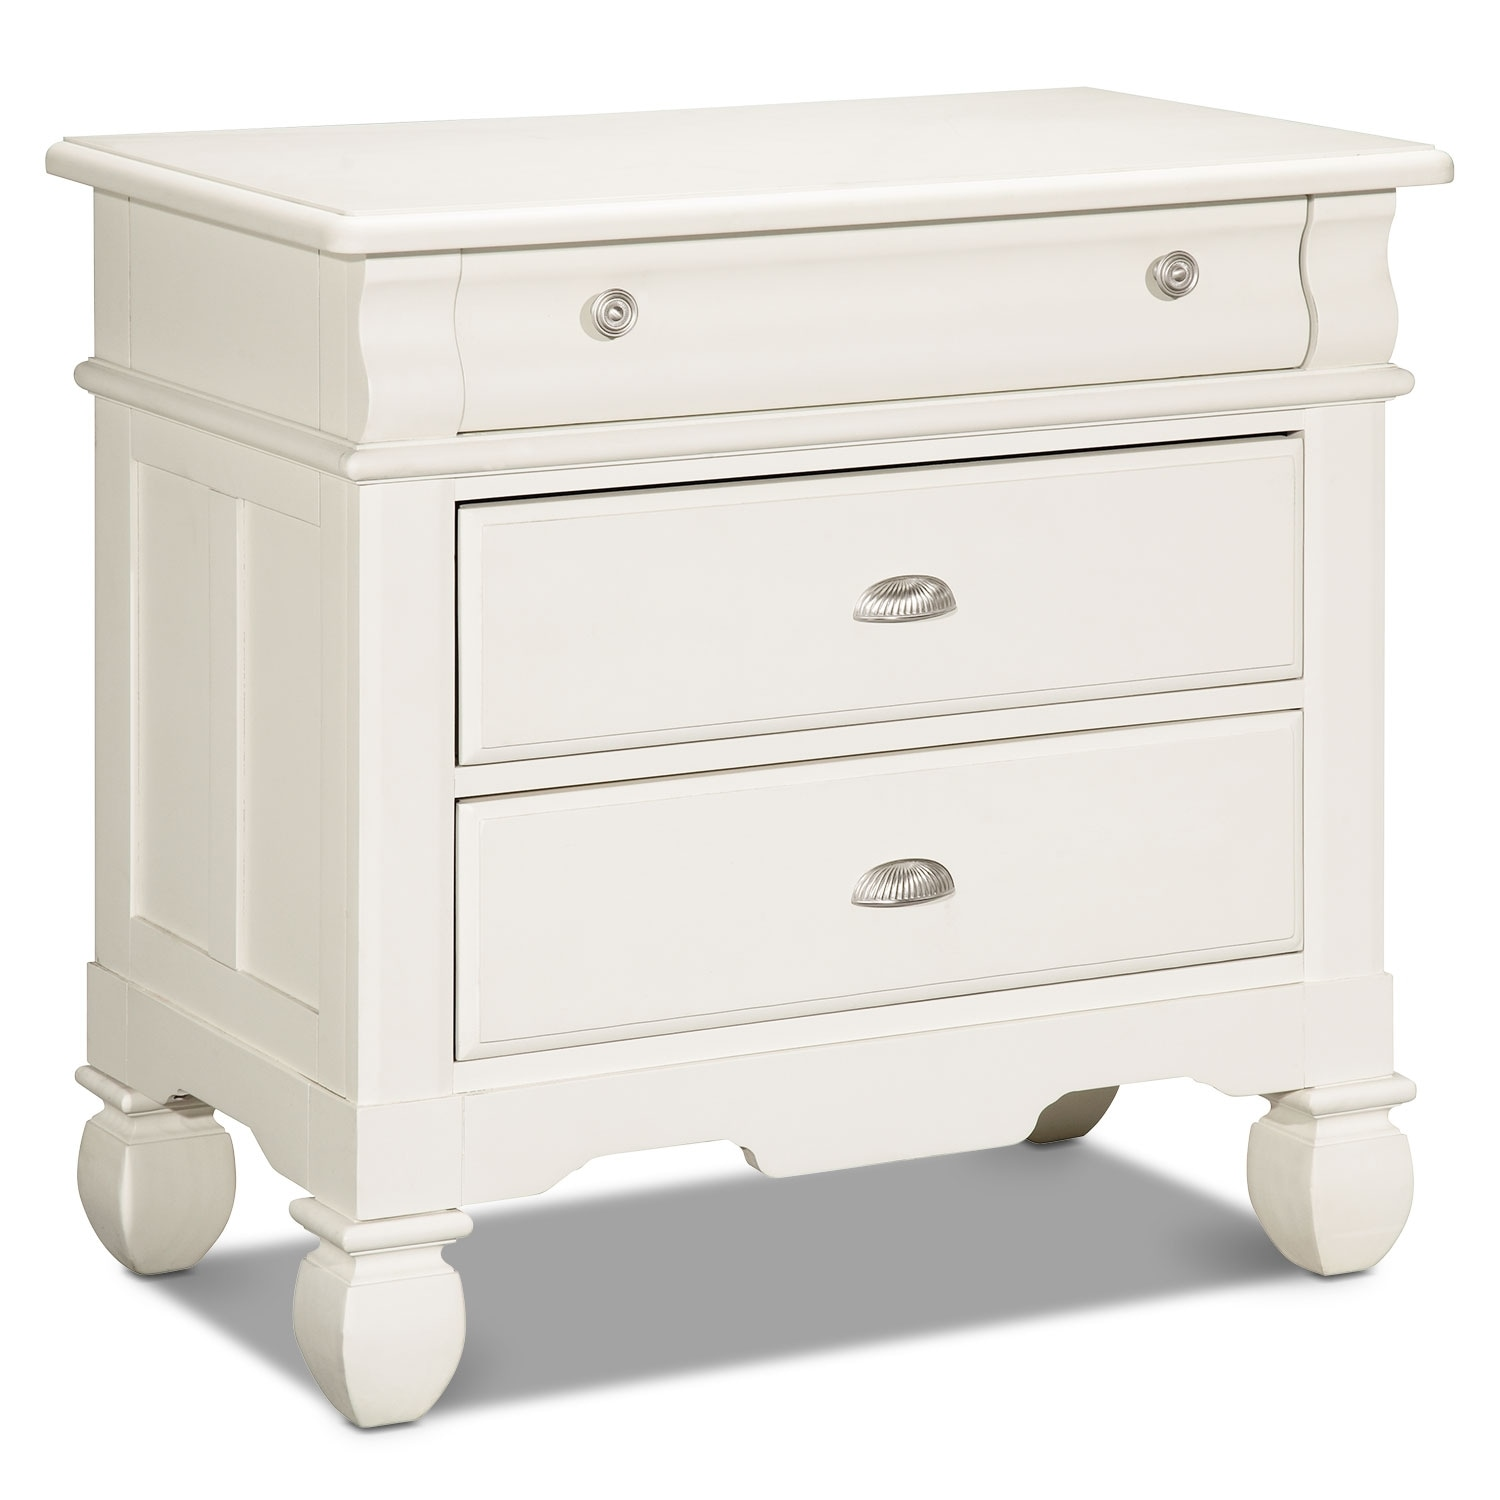 Plantation Cove Drawer Nightstand - White